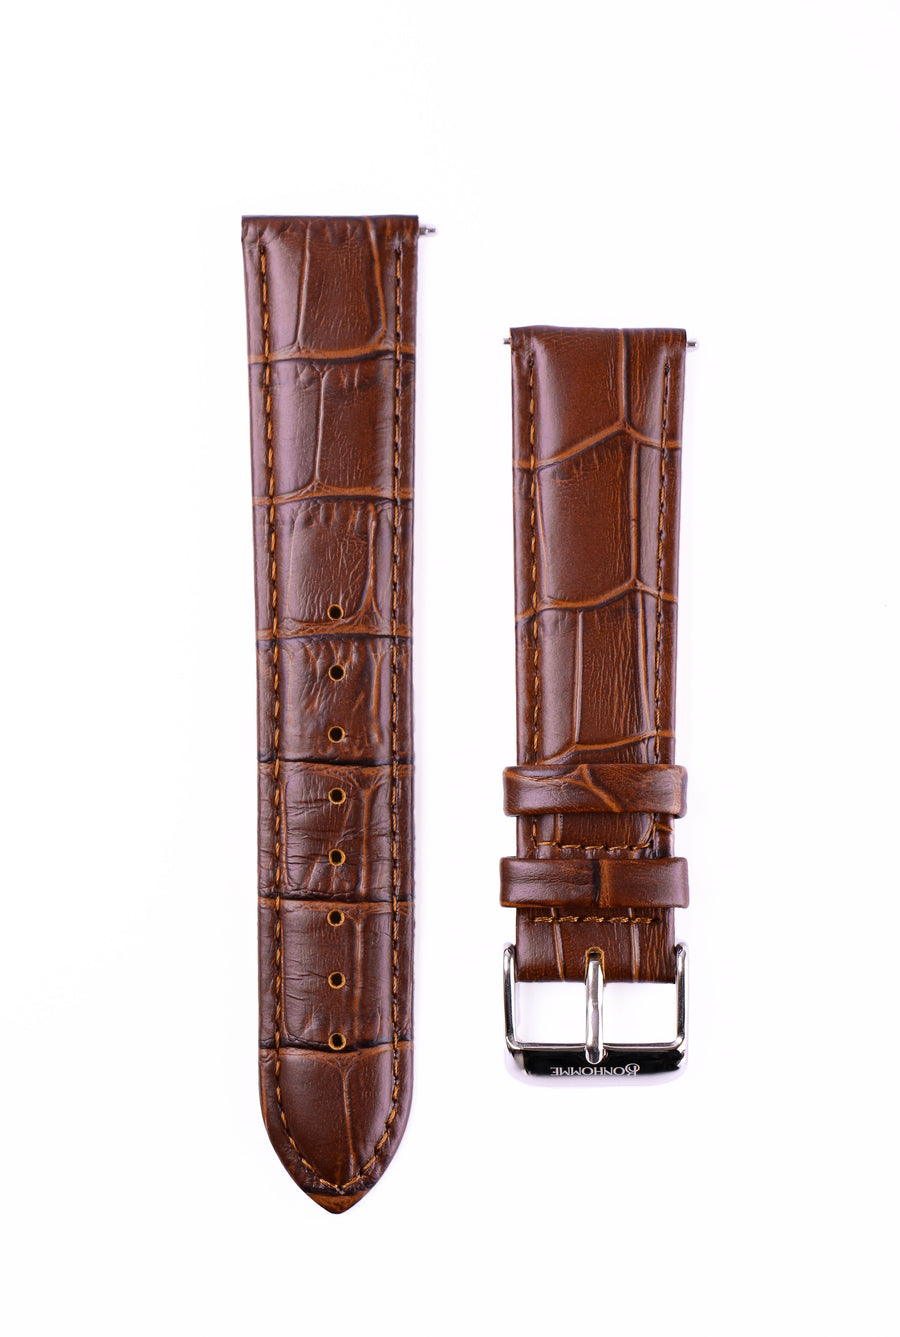 Tan Croc Leather watch strap with engraved silver buckle